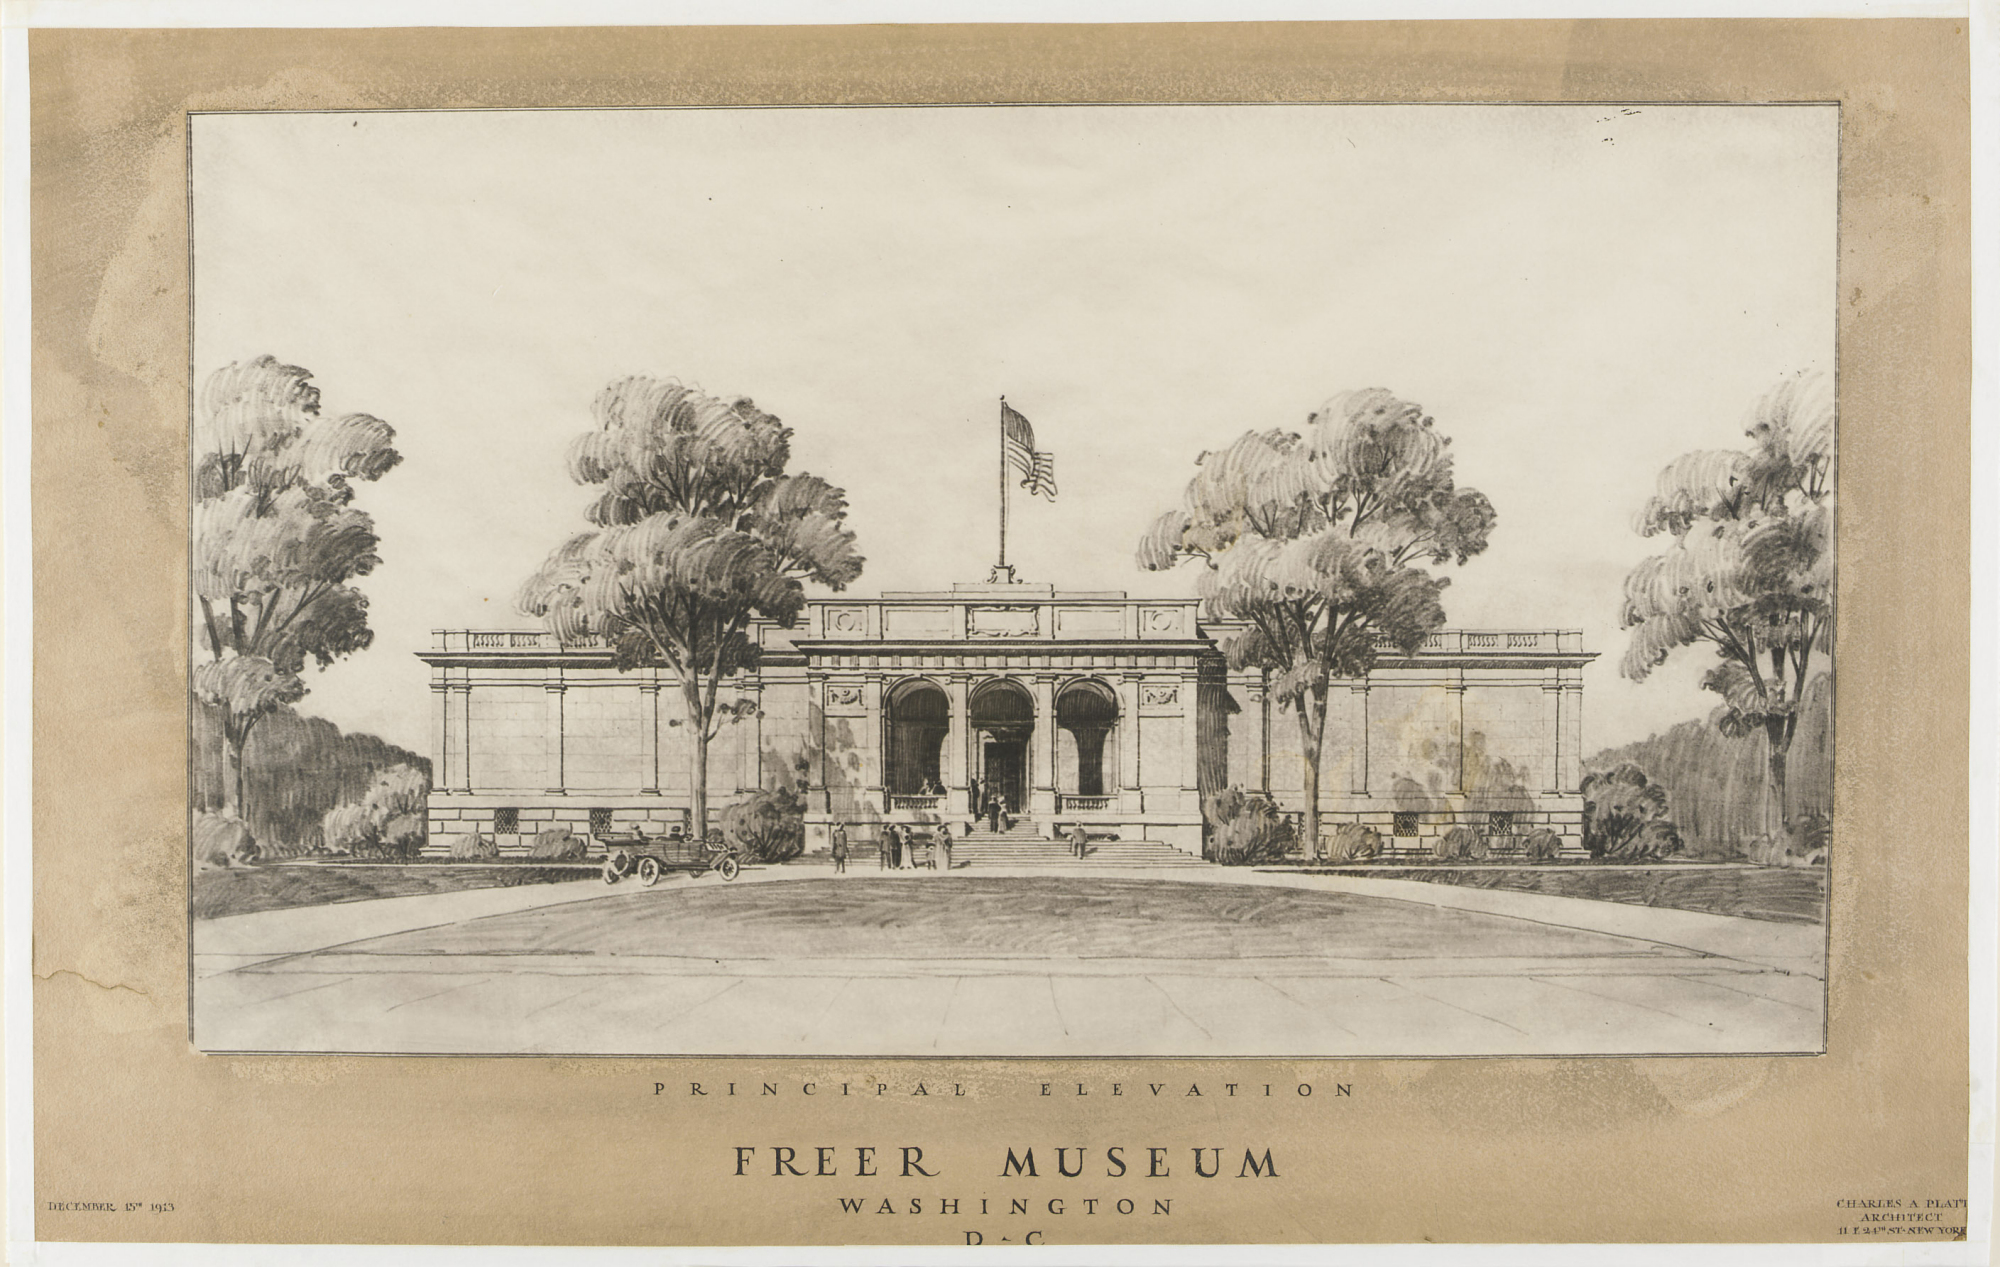 FSC-GR-304; Drawing of 'Freer Museum' dated December 15, 1913